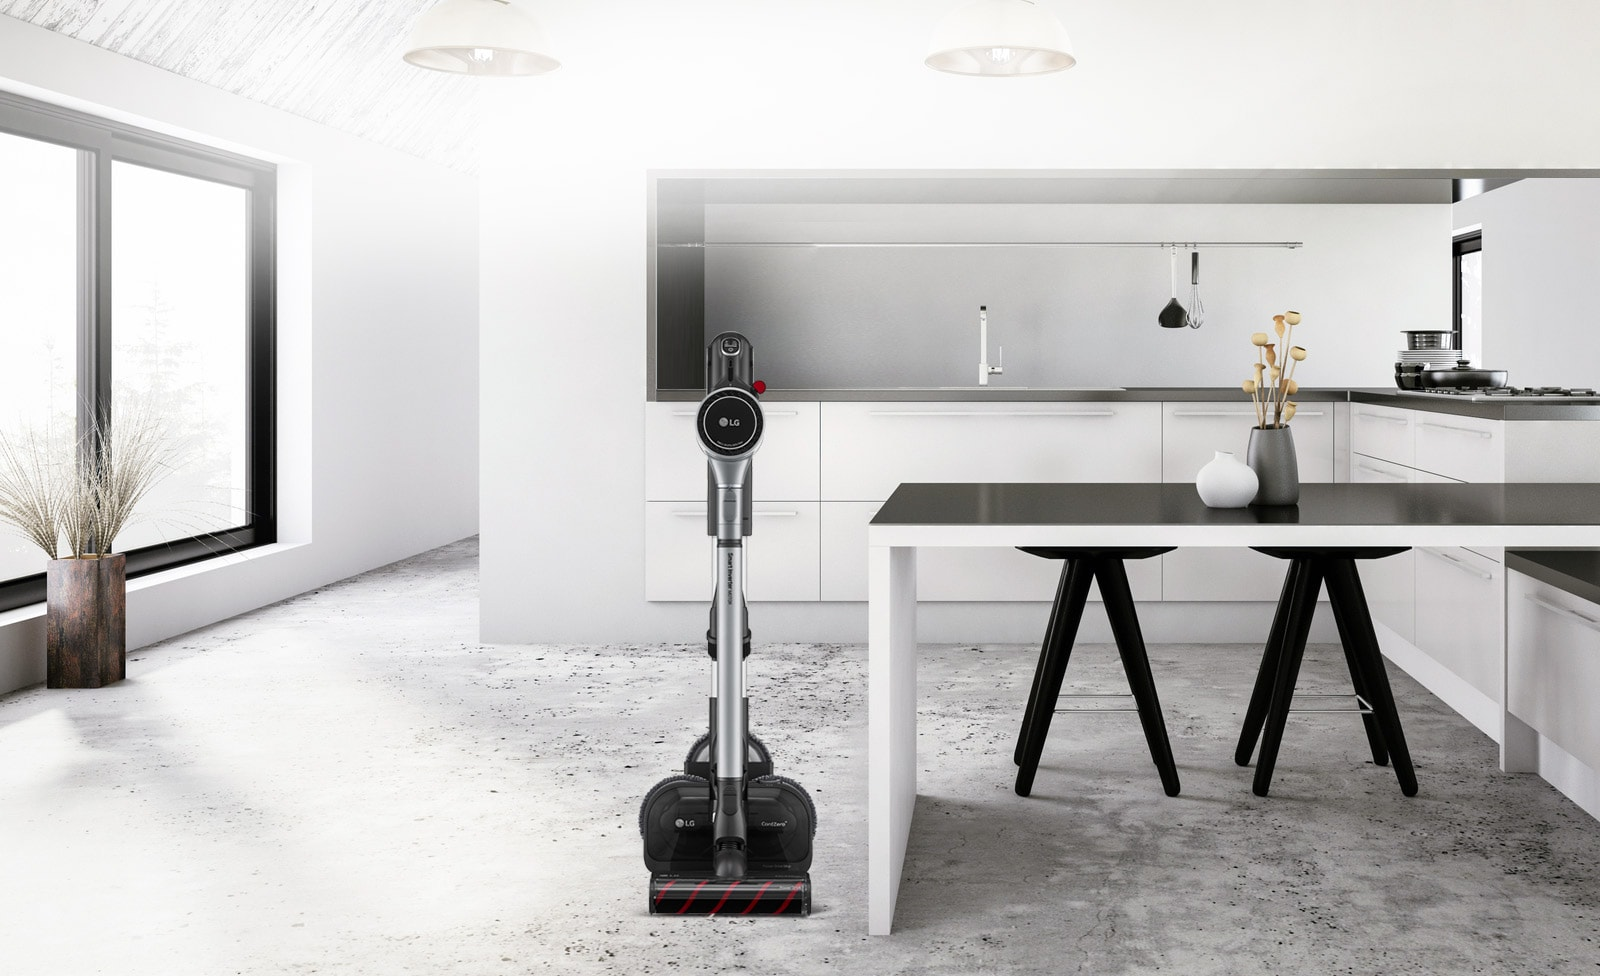 Three images show the vacuum cleaner in the charging stand in various locations:  the first has the charging stand next to a couch, the second it is next to a desk, and the third it is next to a bed.